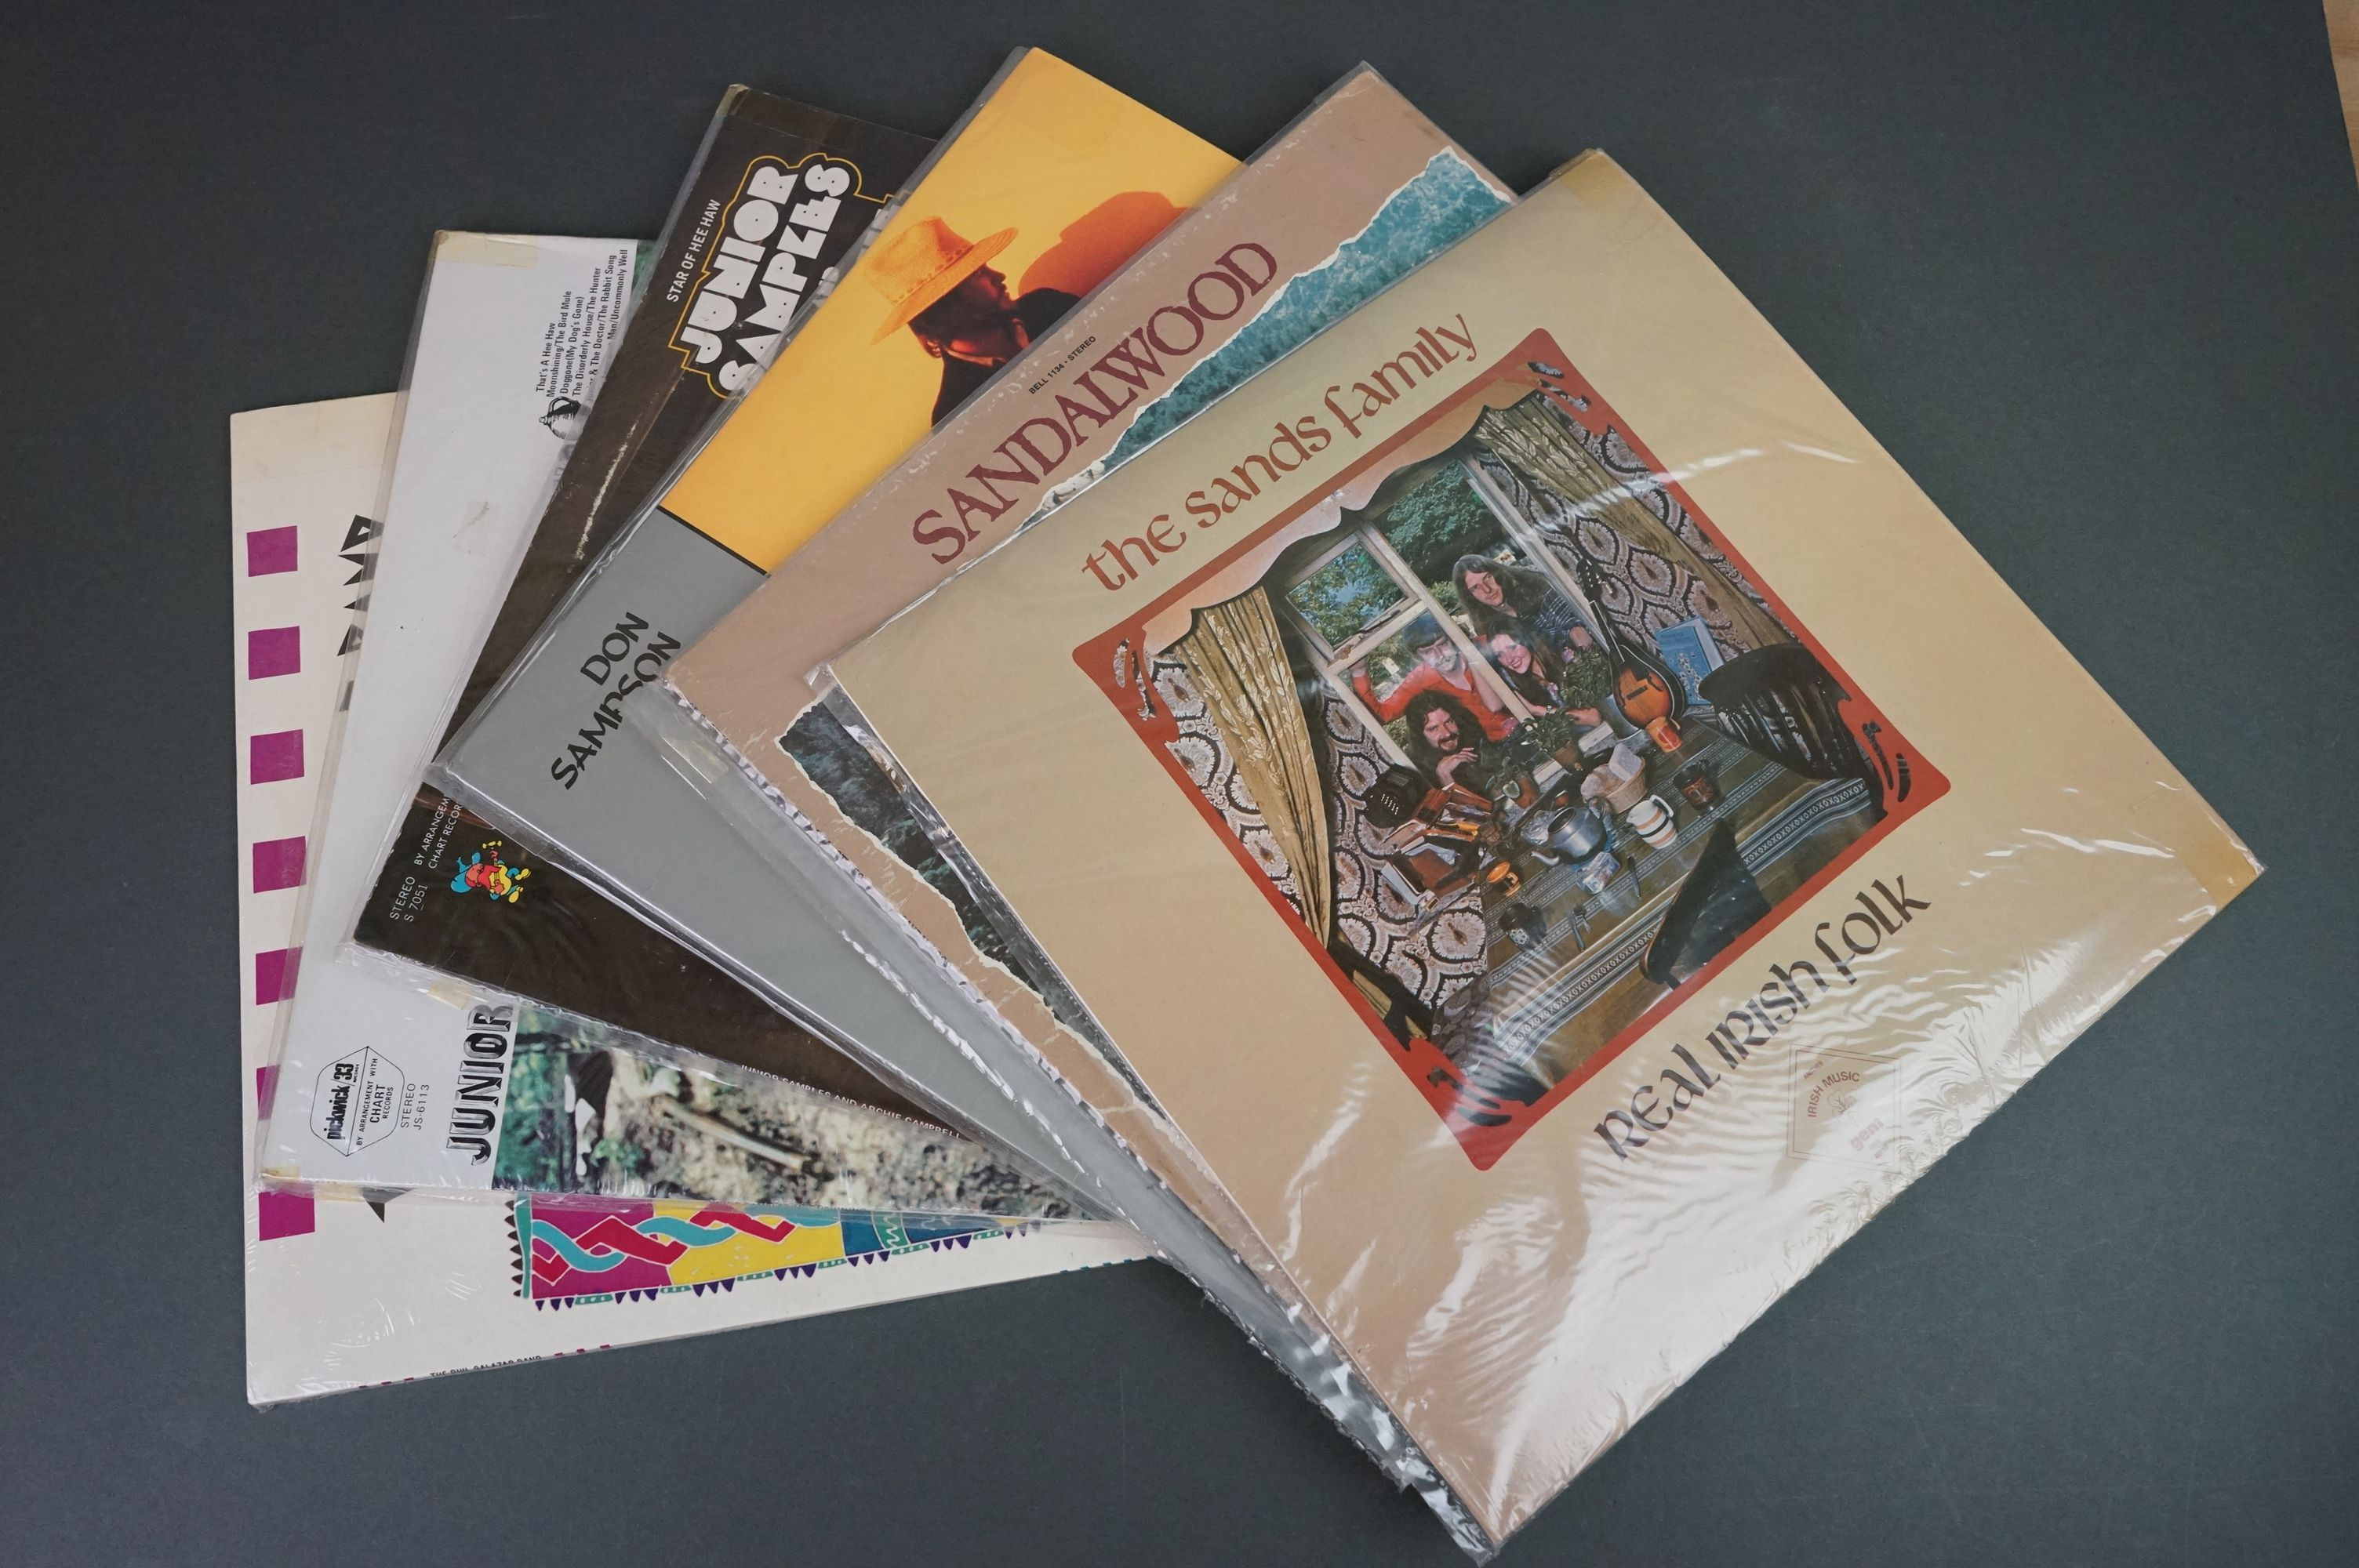 Vinyl - Around 200 LPs to include Country, Pop, Easy Listening etc, sleeves and vinyl vg+ (two - Image 3 of 4